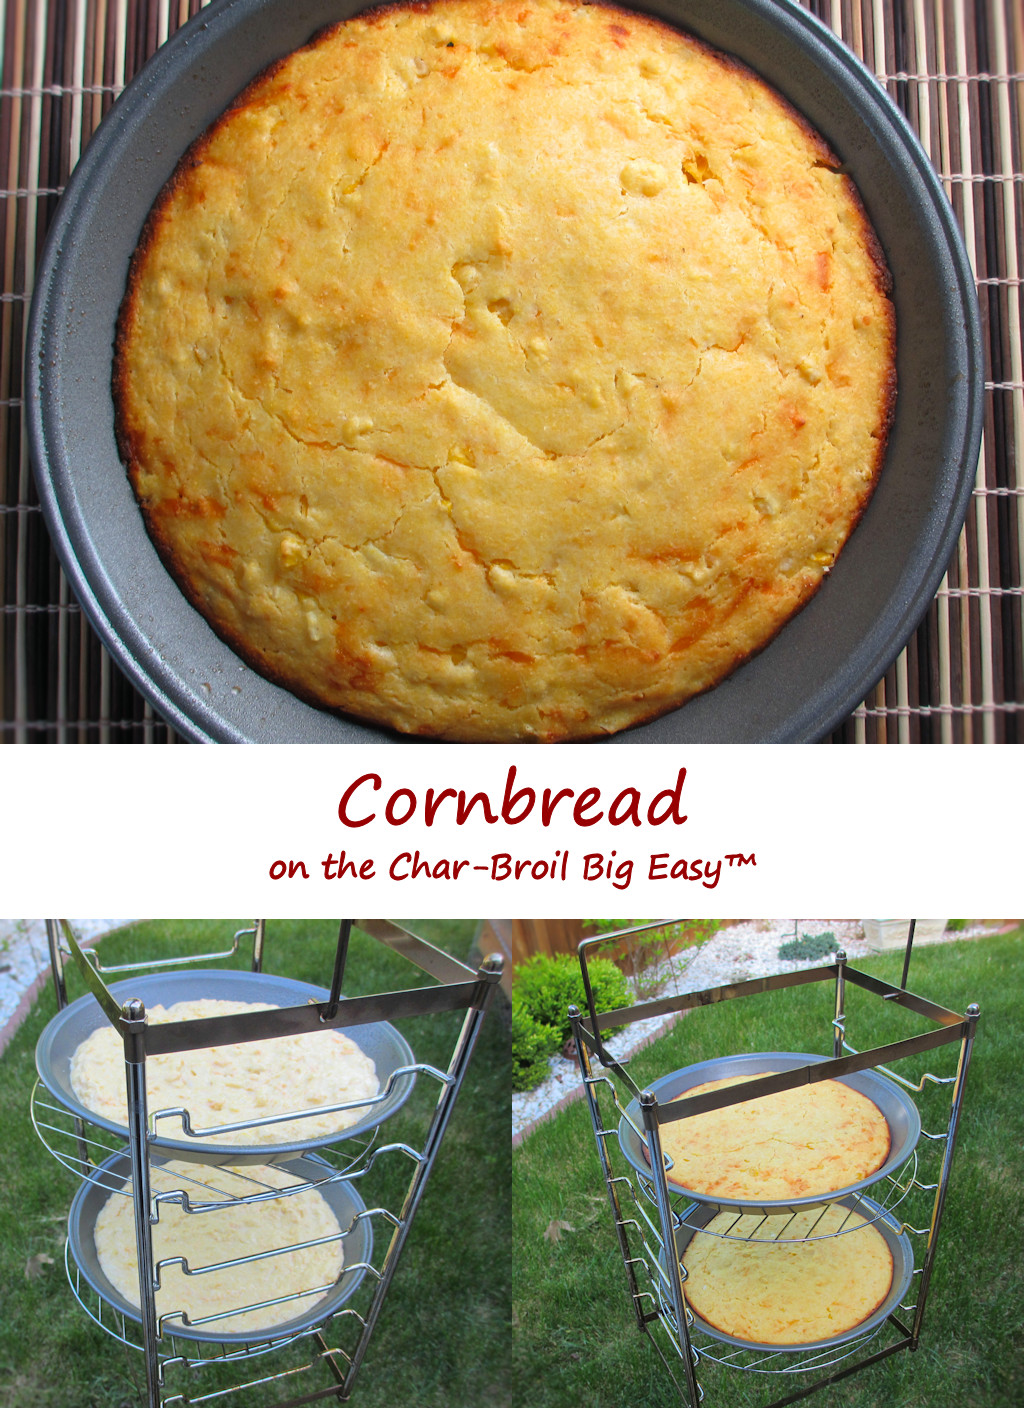 Cornbread on the Char-Broil Big Easy